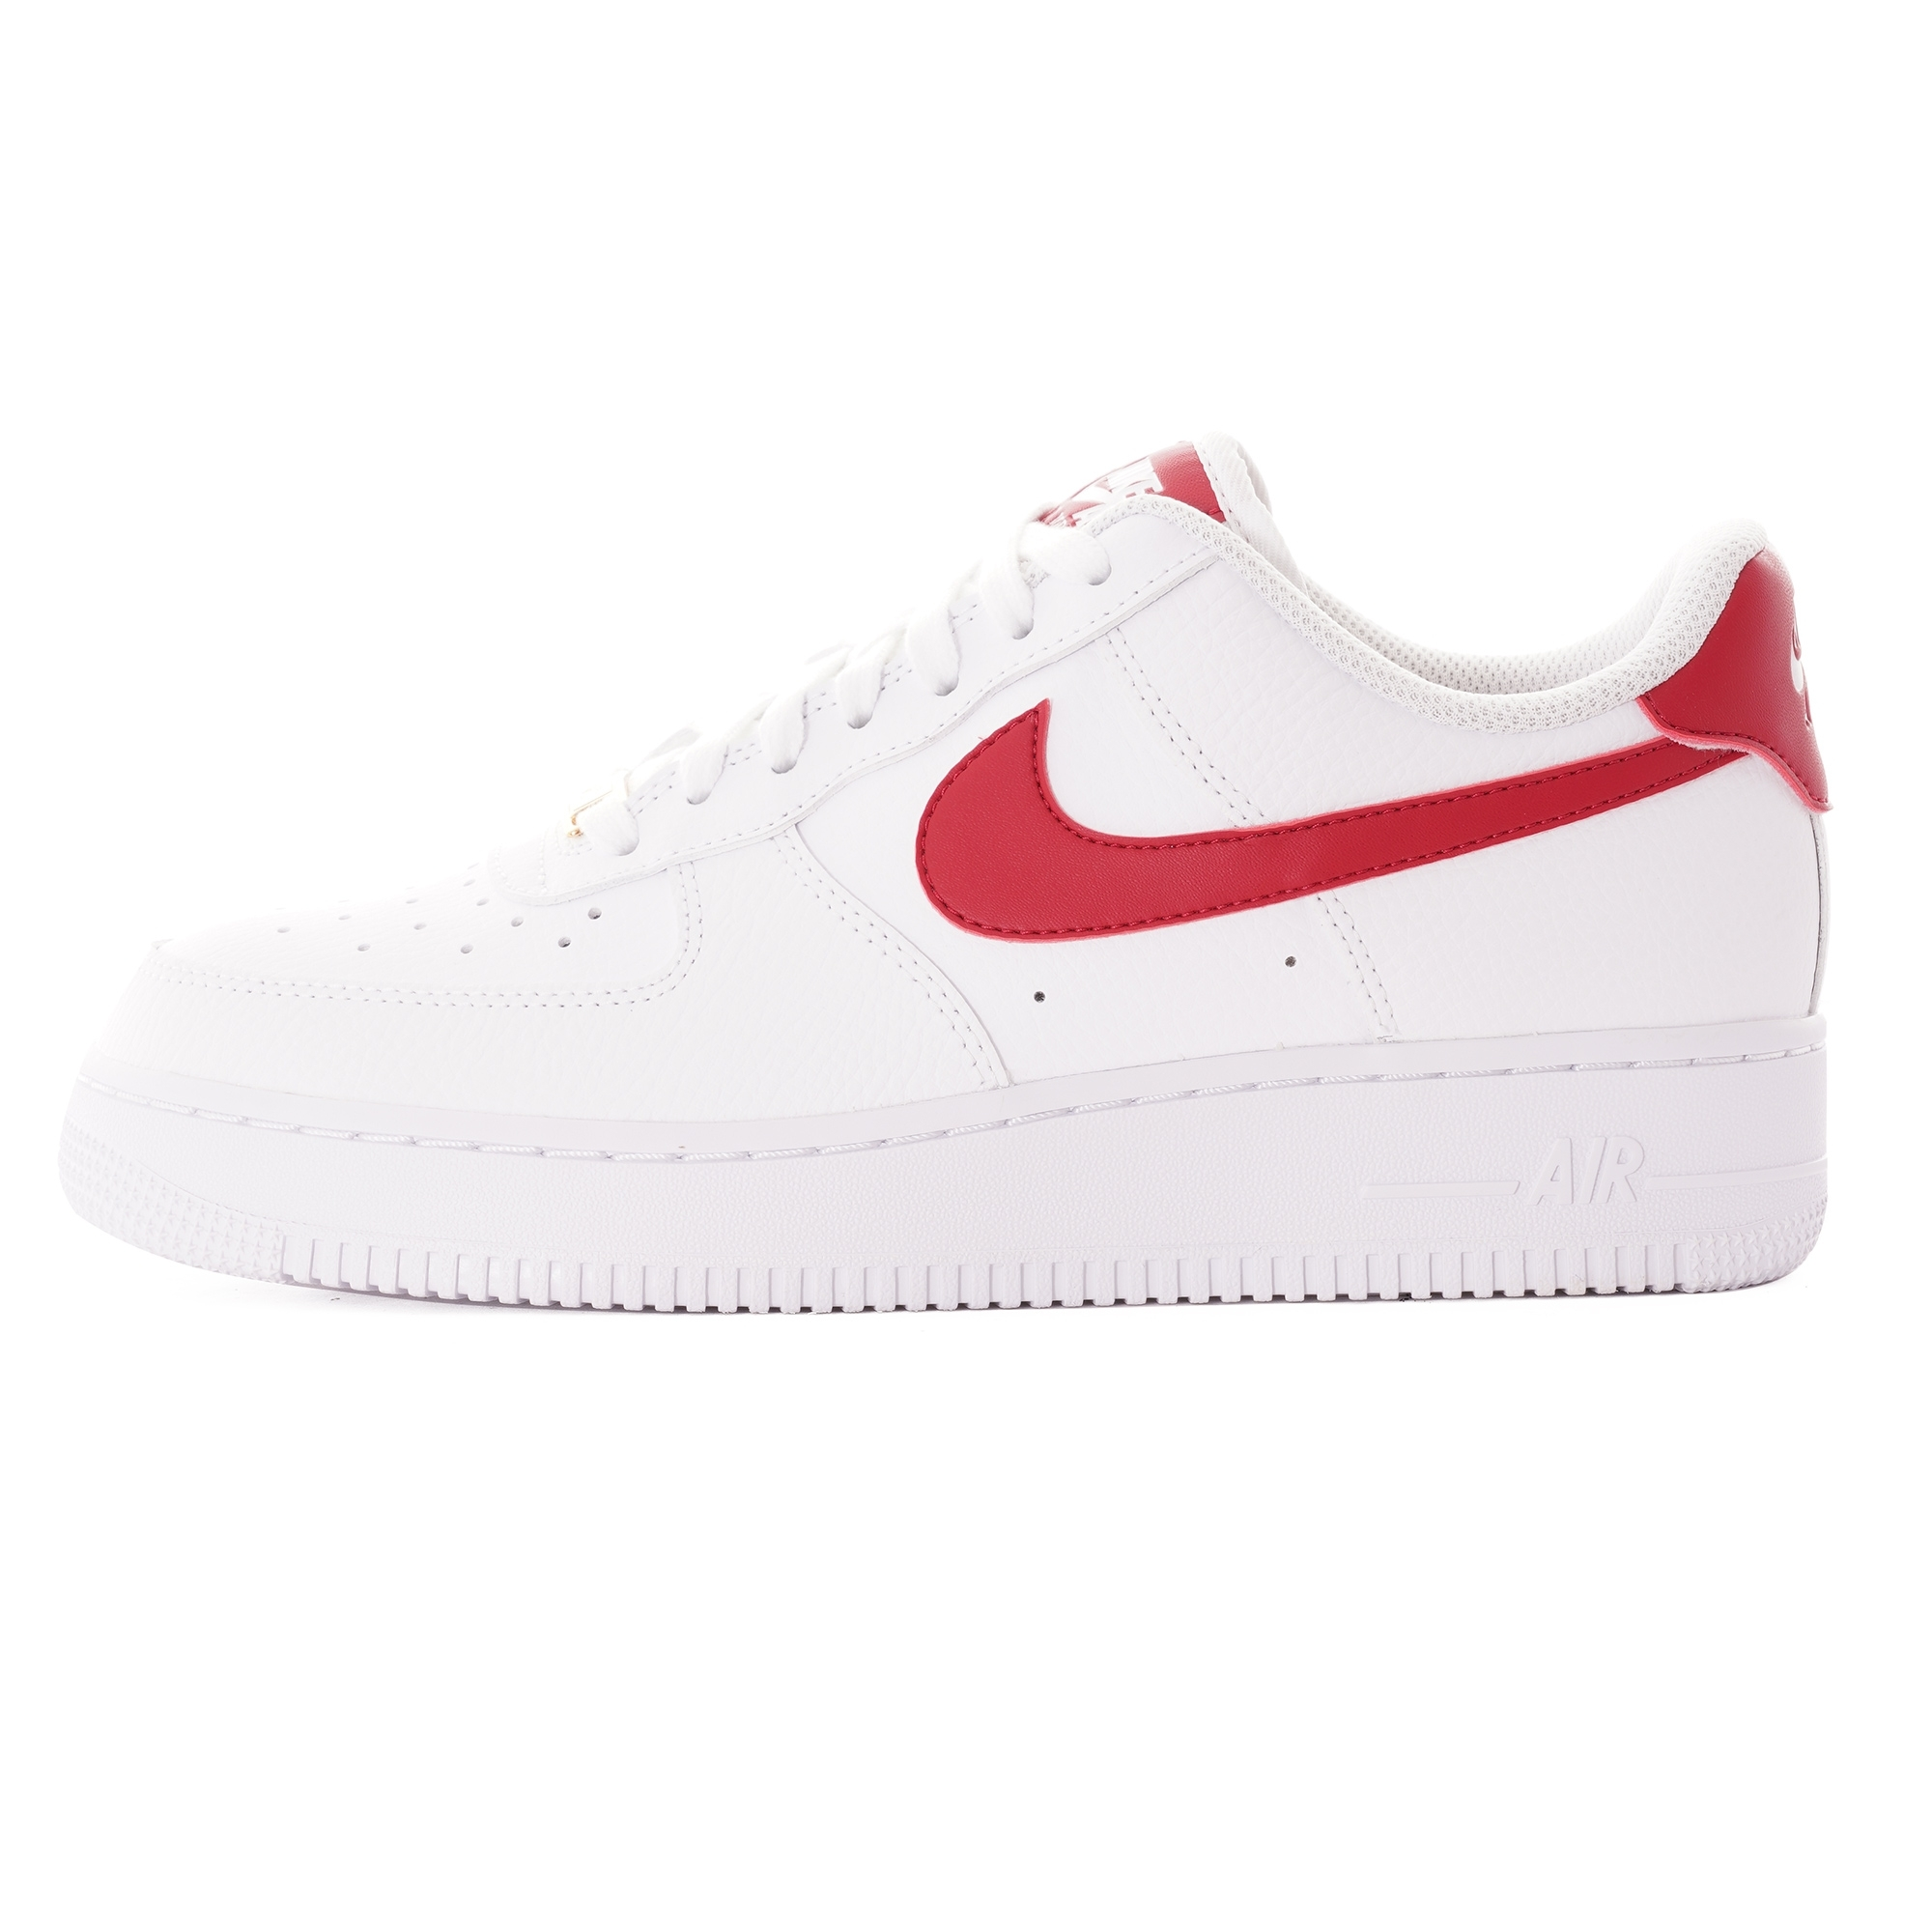 Nike Air Force 1 07 shoes red gold white | WeAre Shop